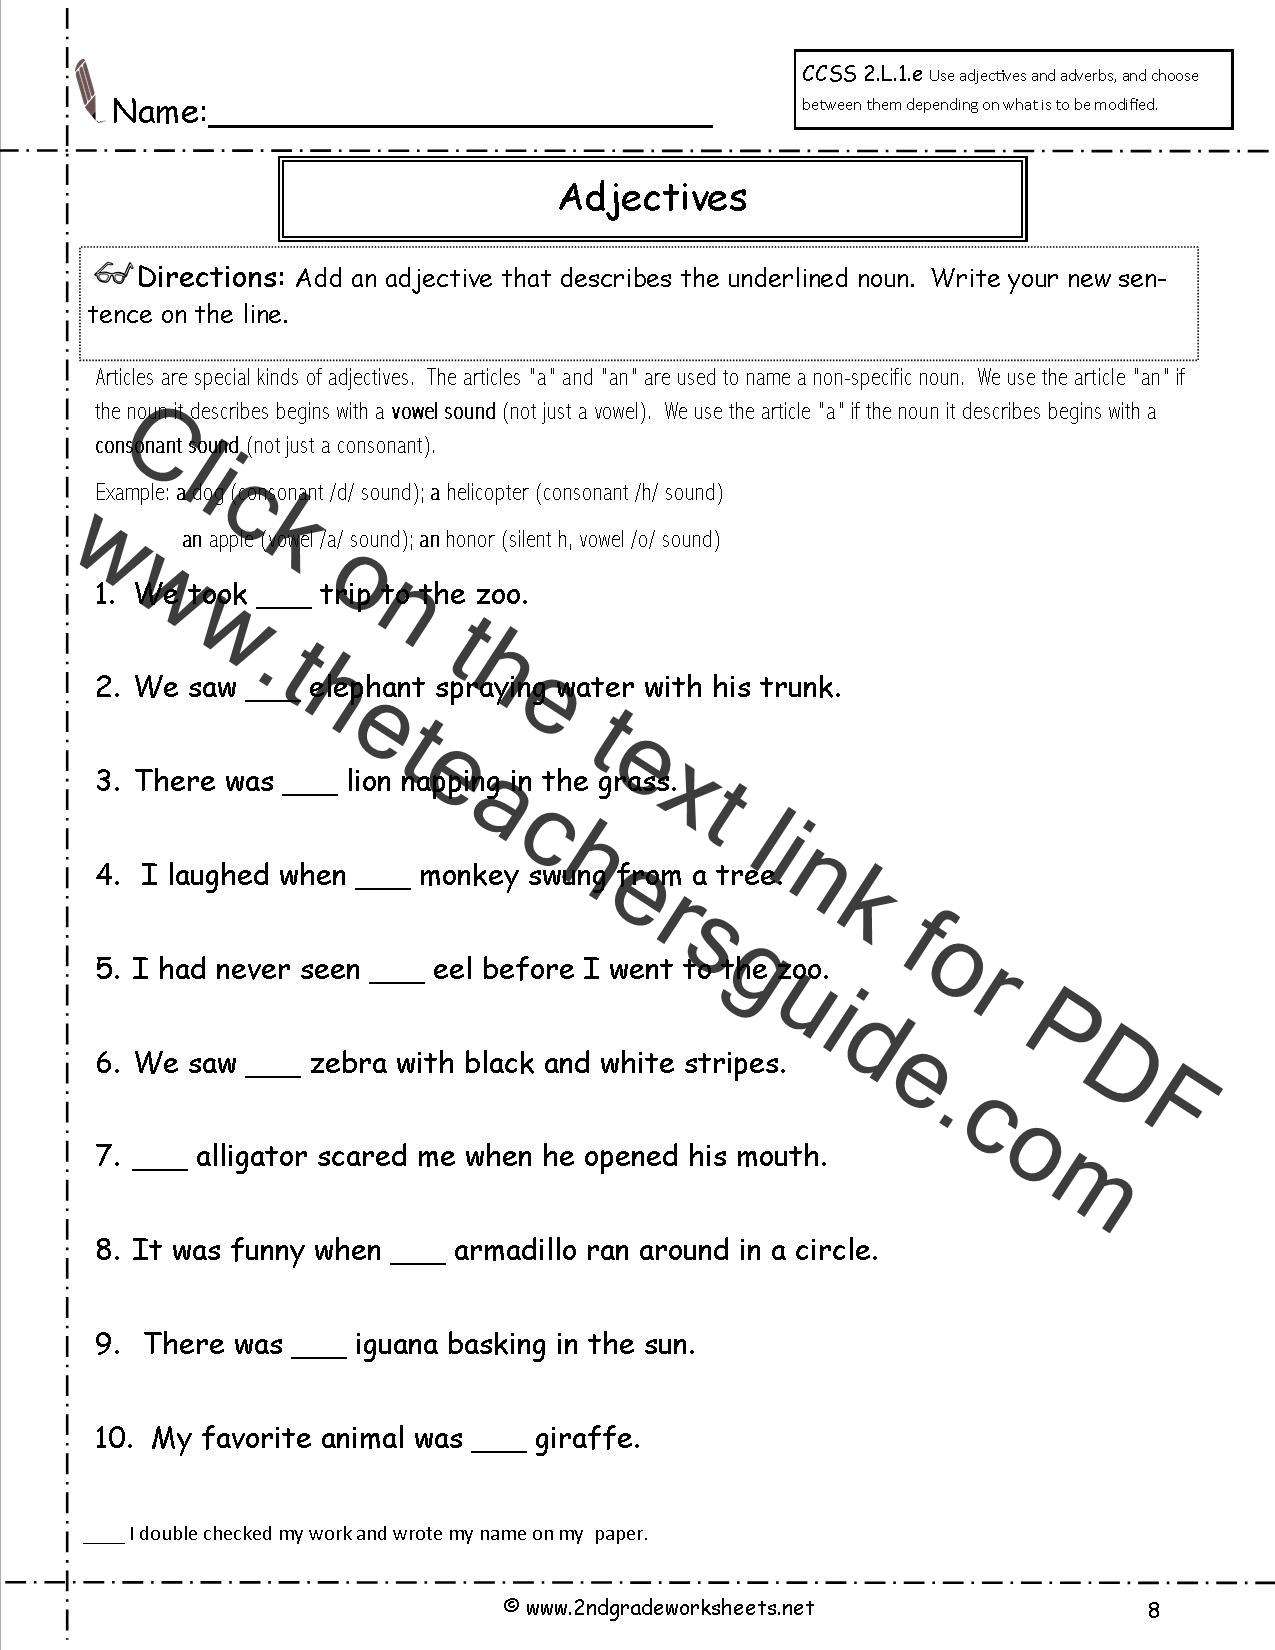 Printables Grammar Worksheets For 2nd Grade free languagegrammar worksheets and printouts adjectives worksheets